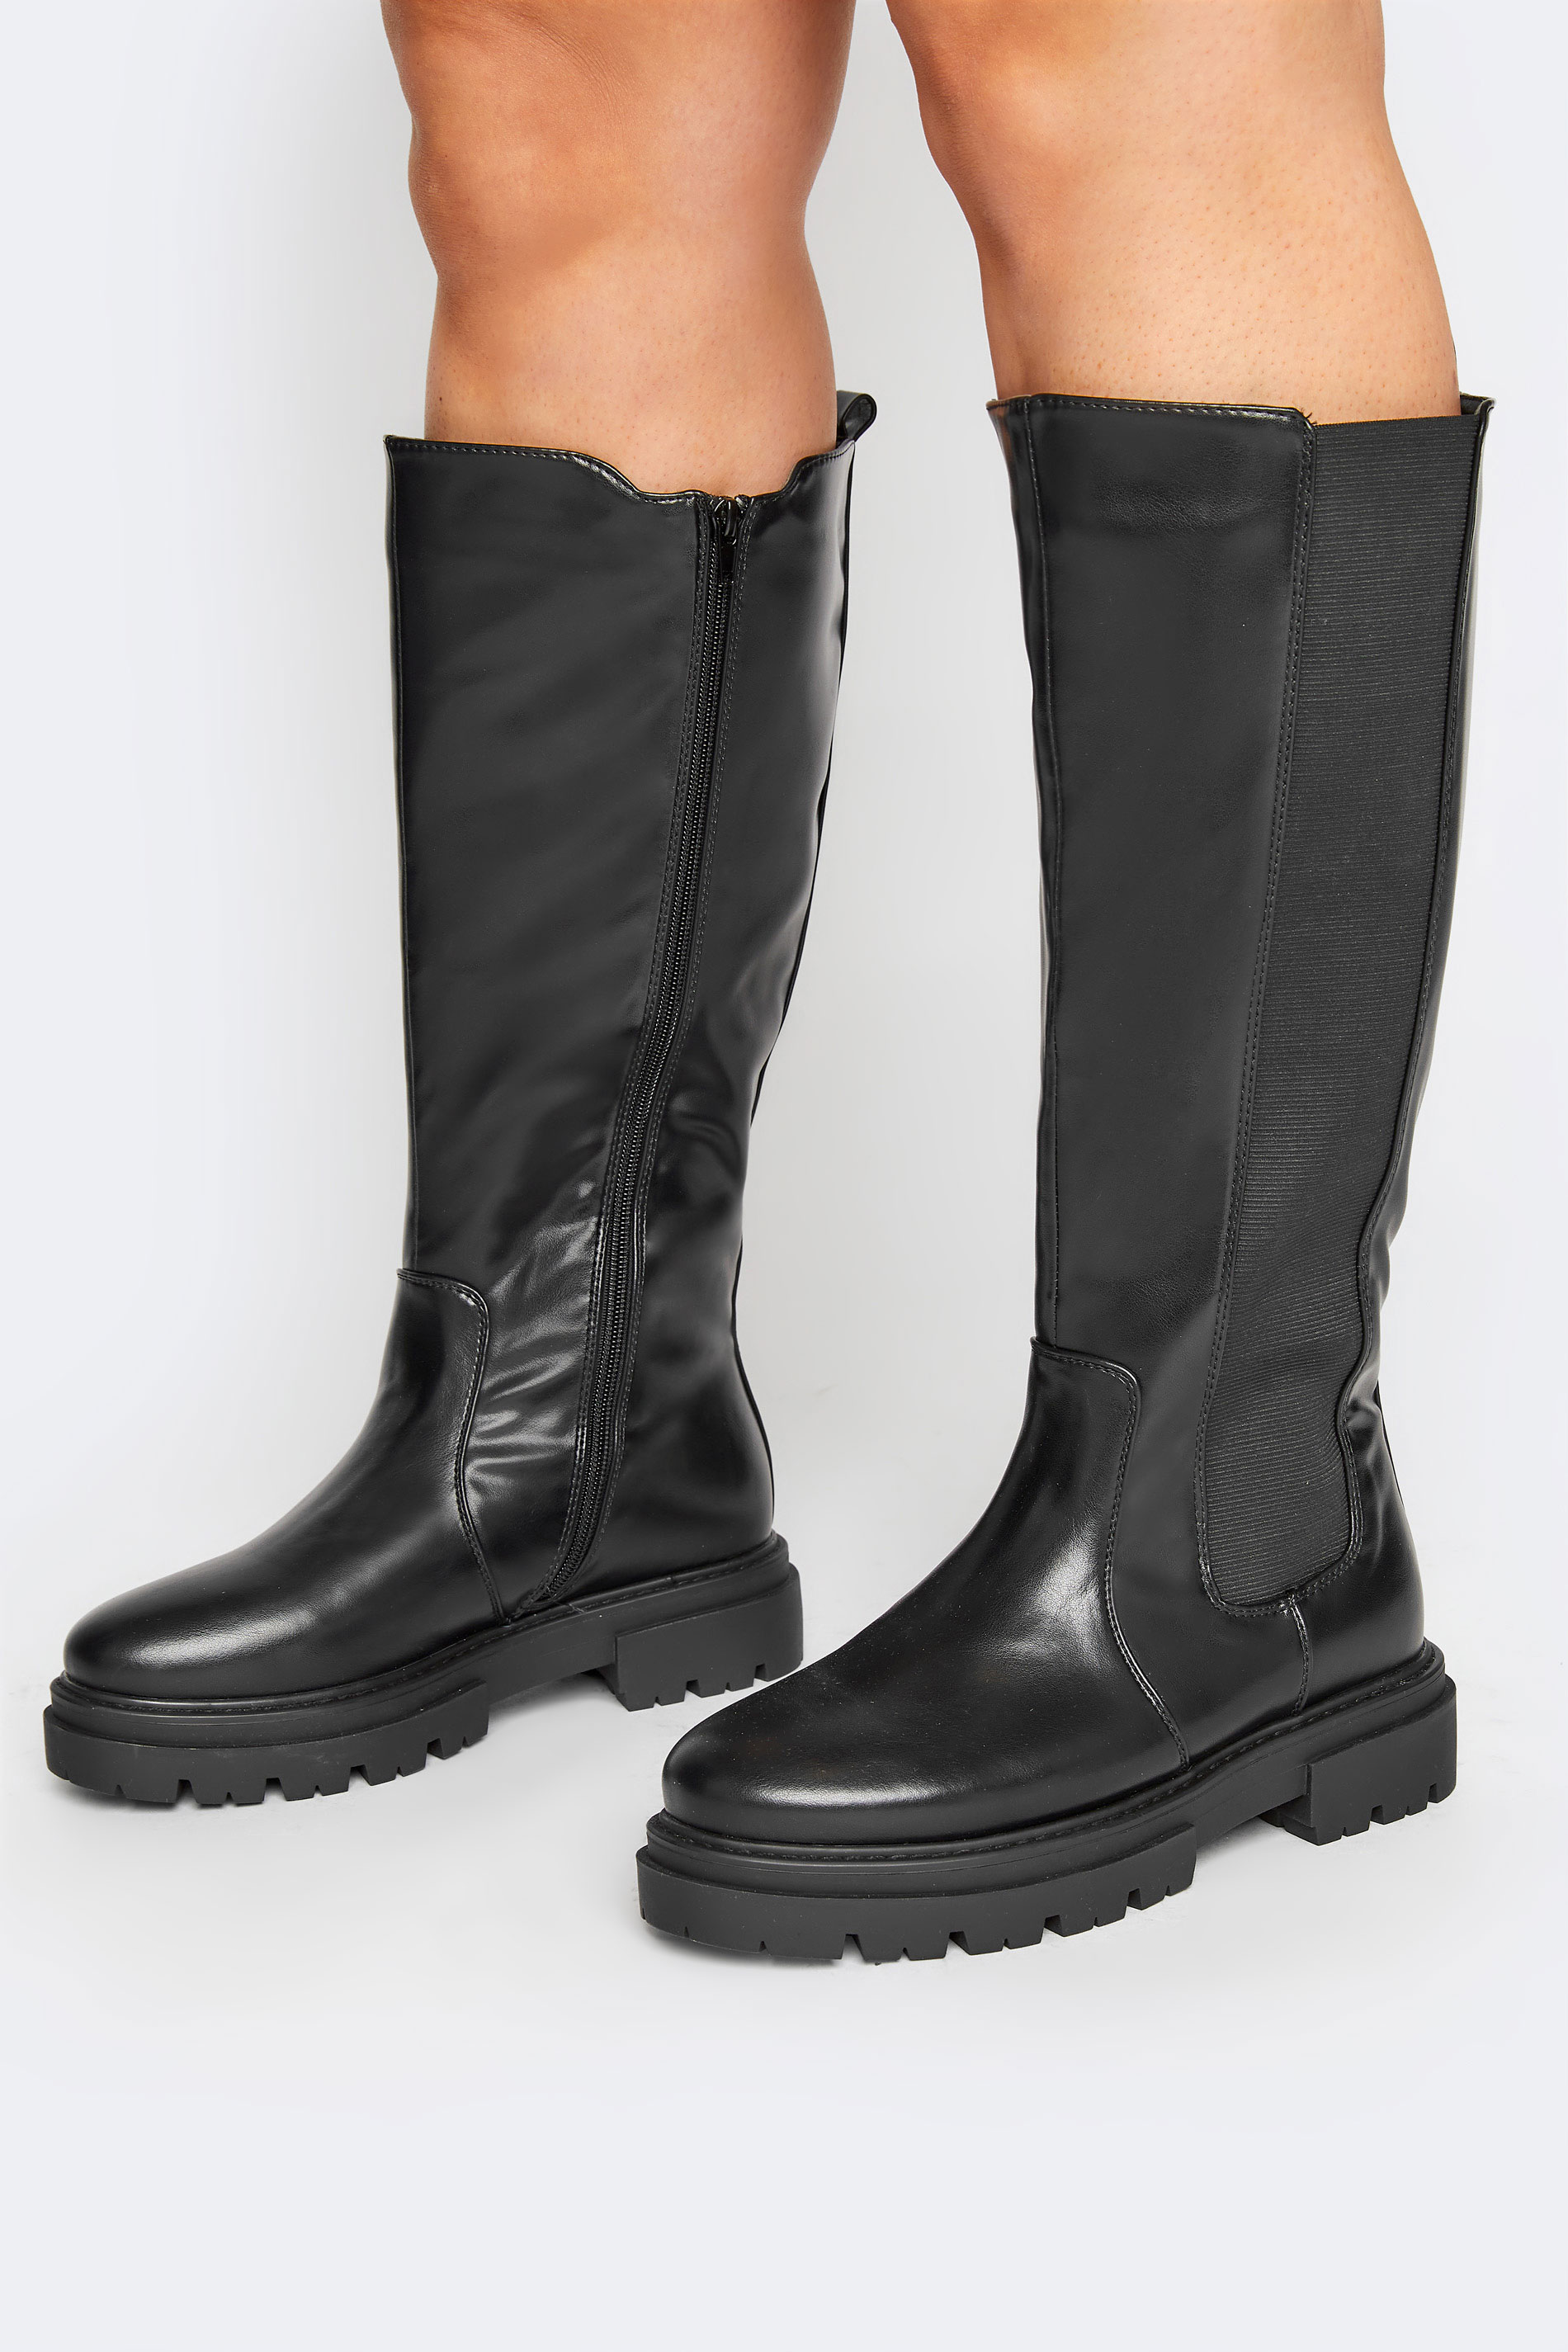 LIMITED COLLECTION Black Elasticated Knee High Cleated Boots In Extra Wide Fit_M.jpg